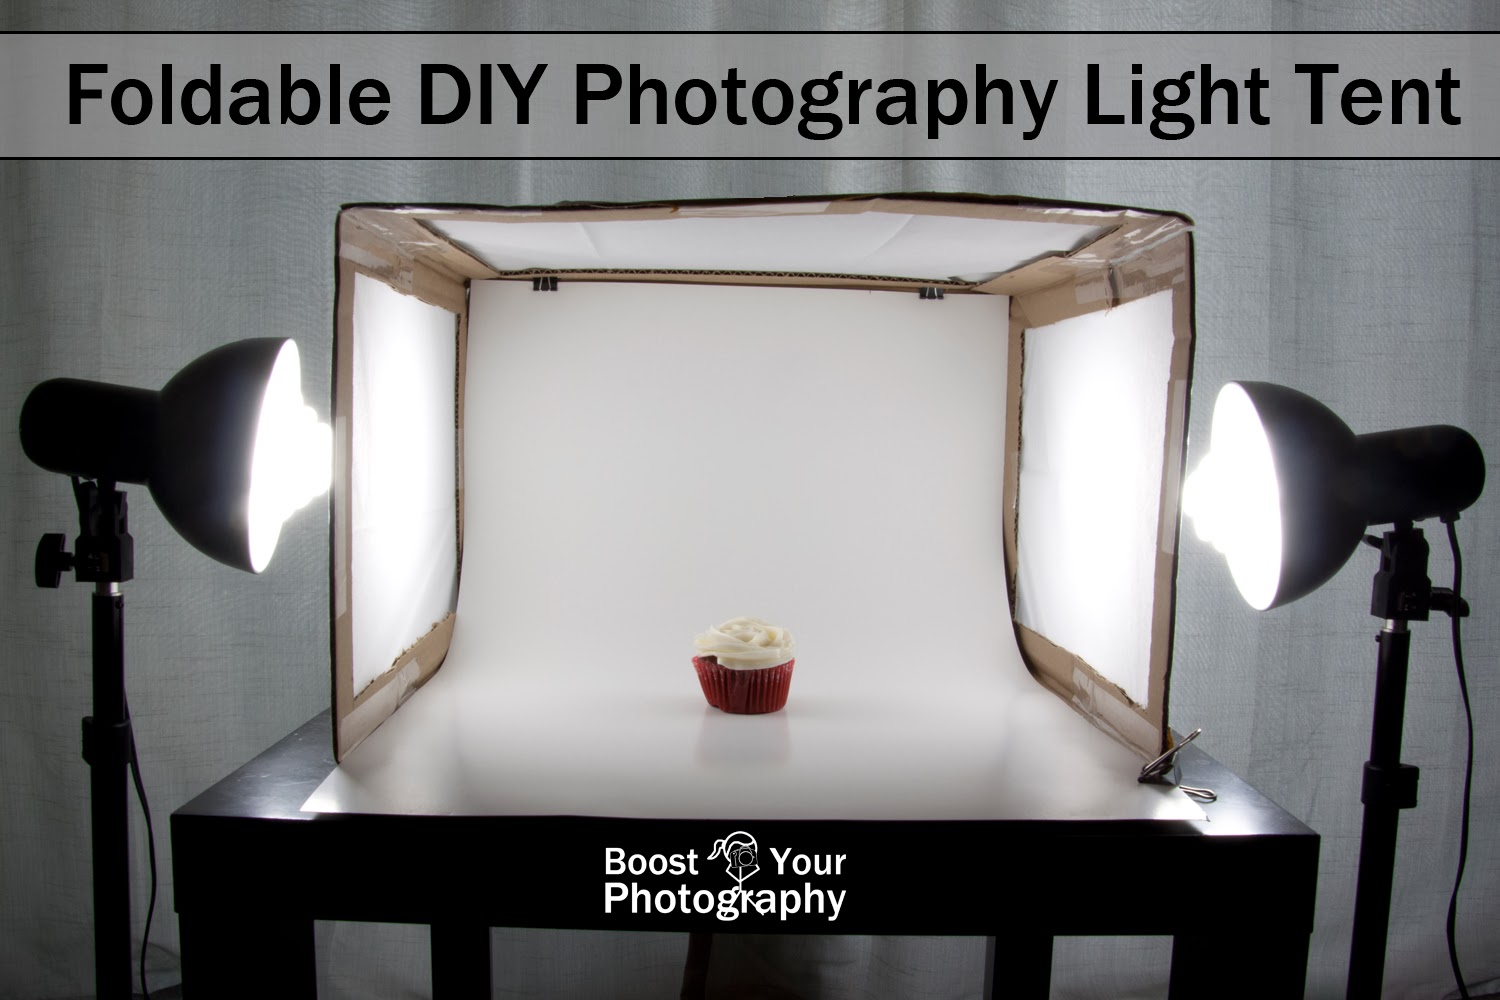 Foldable DIY Photography Light Tent